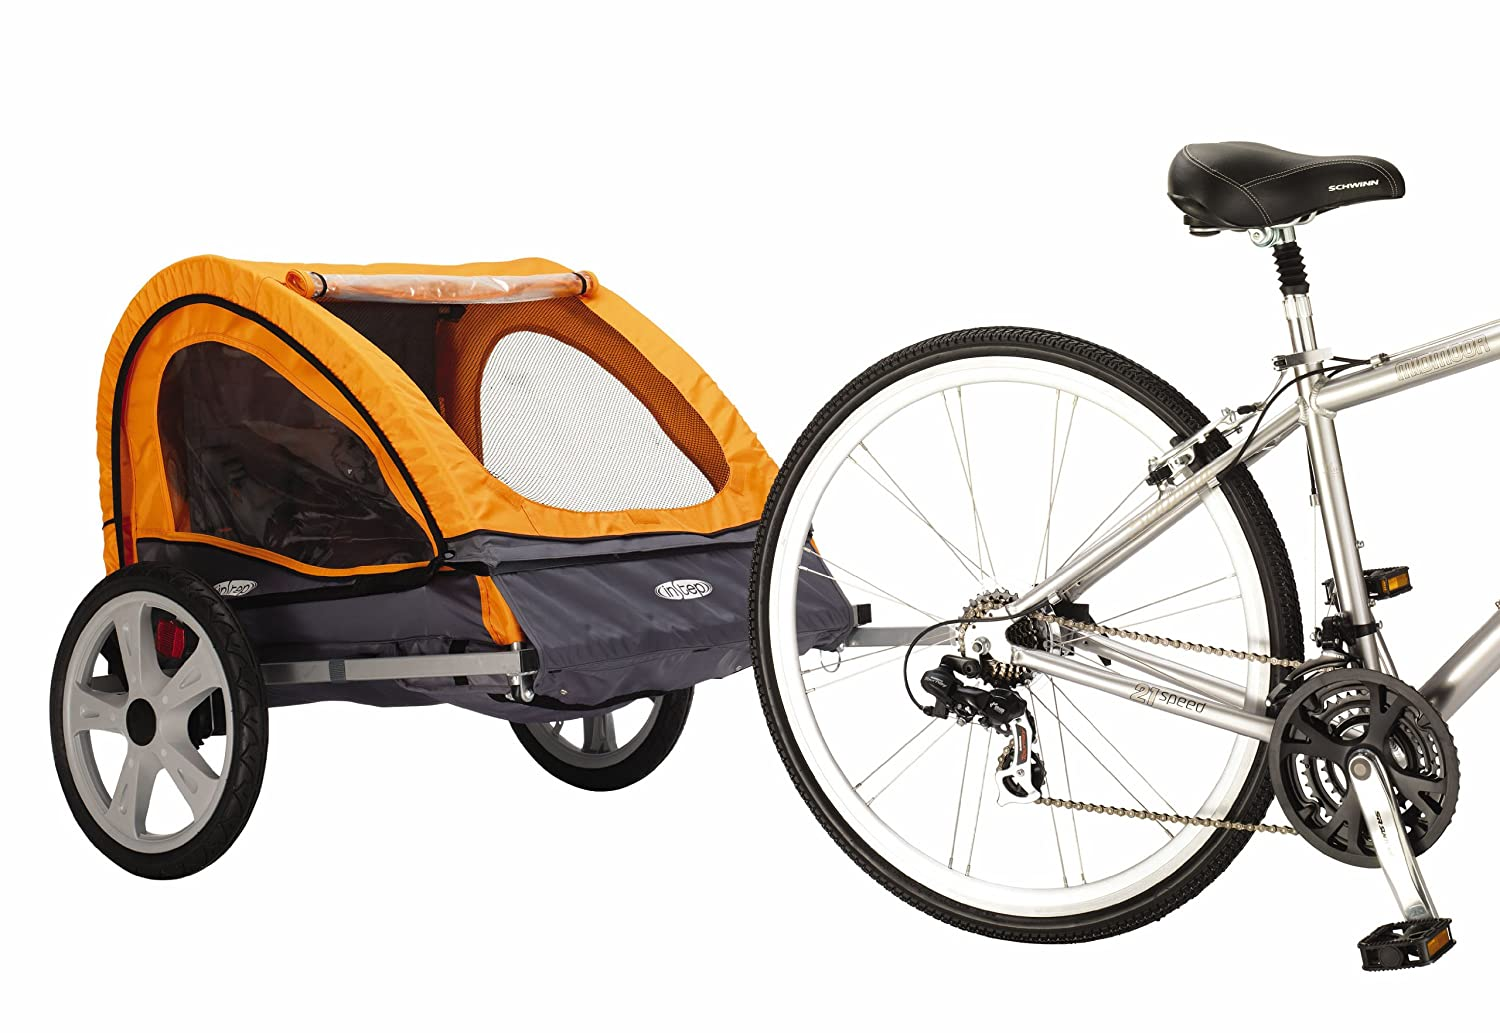 Pacific Cycle Instep Quick N EZ - Remolque Doble para Bicicleta, 12-QE212, Orange/Gray: Amazon.es: Deportes y aire libre